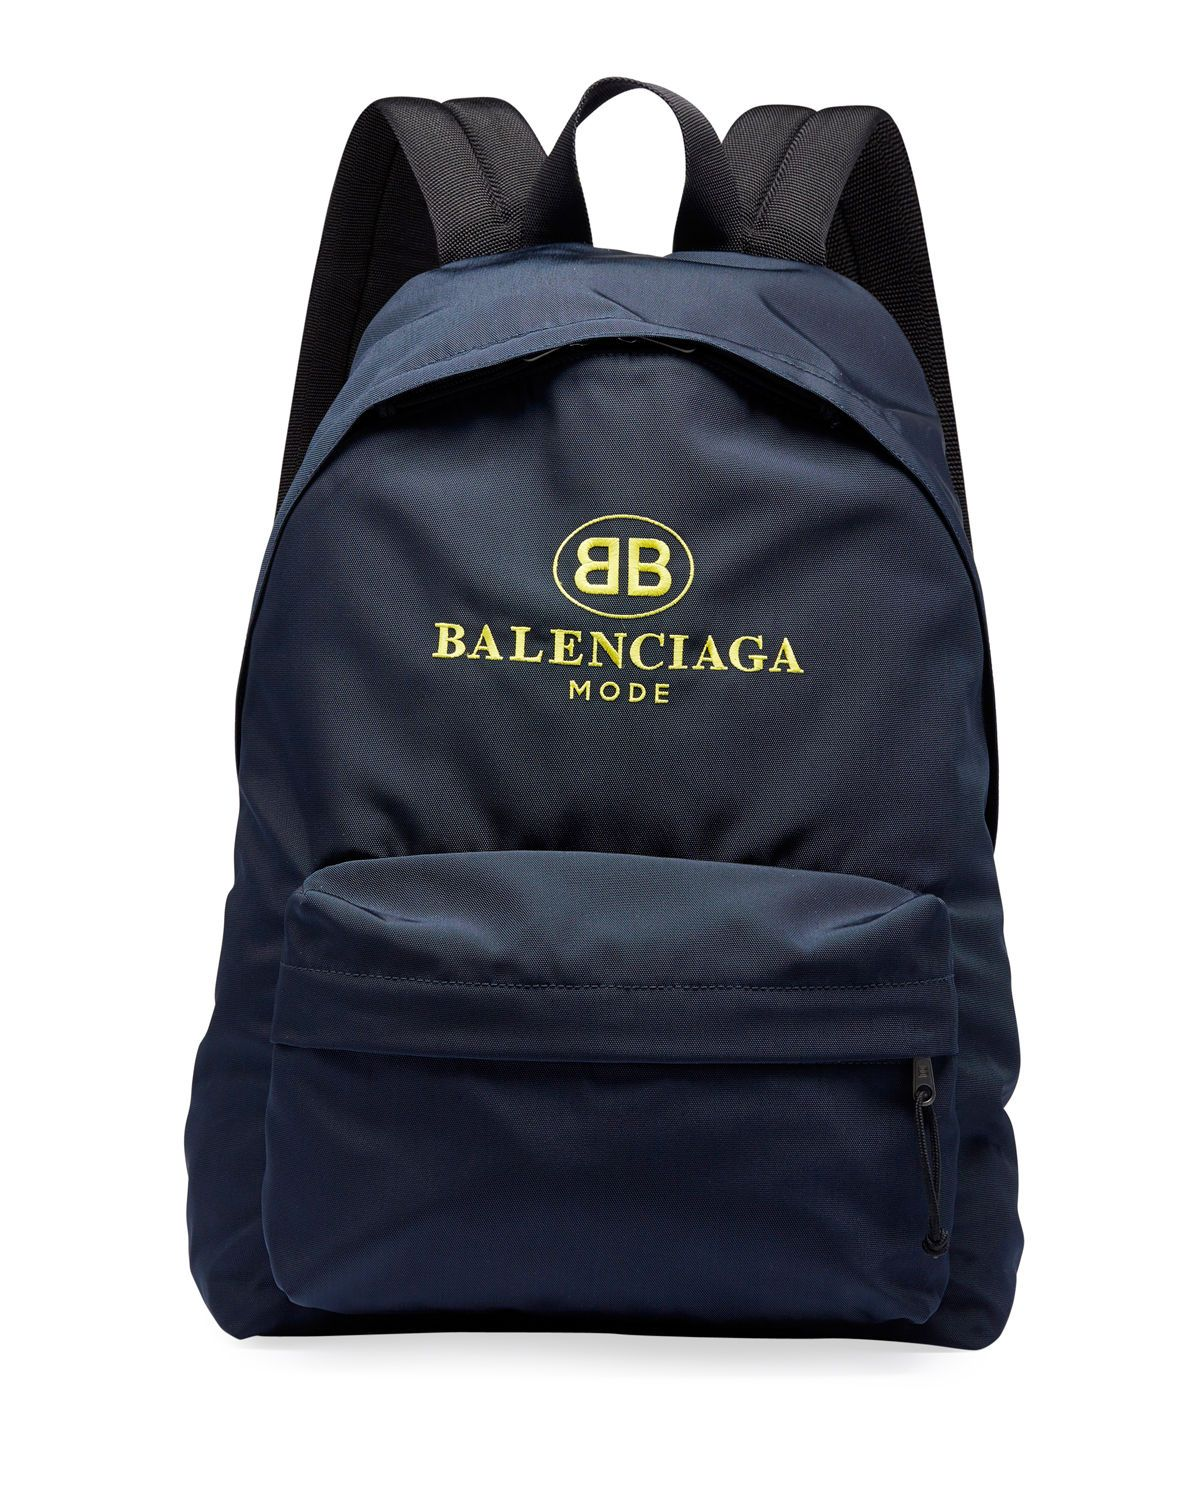 8c516113139107 BALENCIAGA MEN'S DOUBLE-B LOGO BACKPACK. #balenciaga #bags #canvas #nylon  #backpacks #polyester